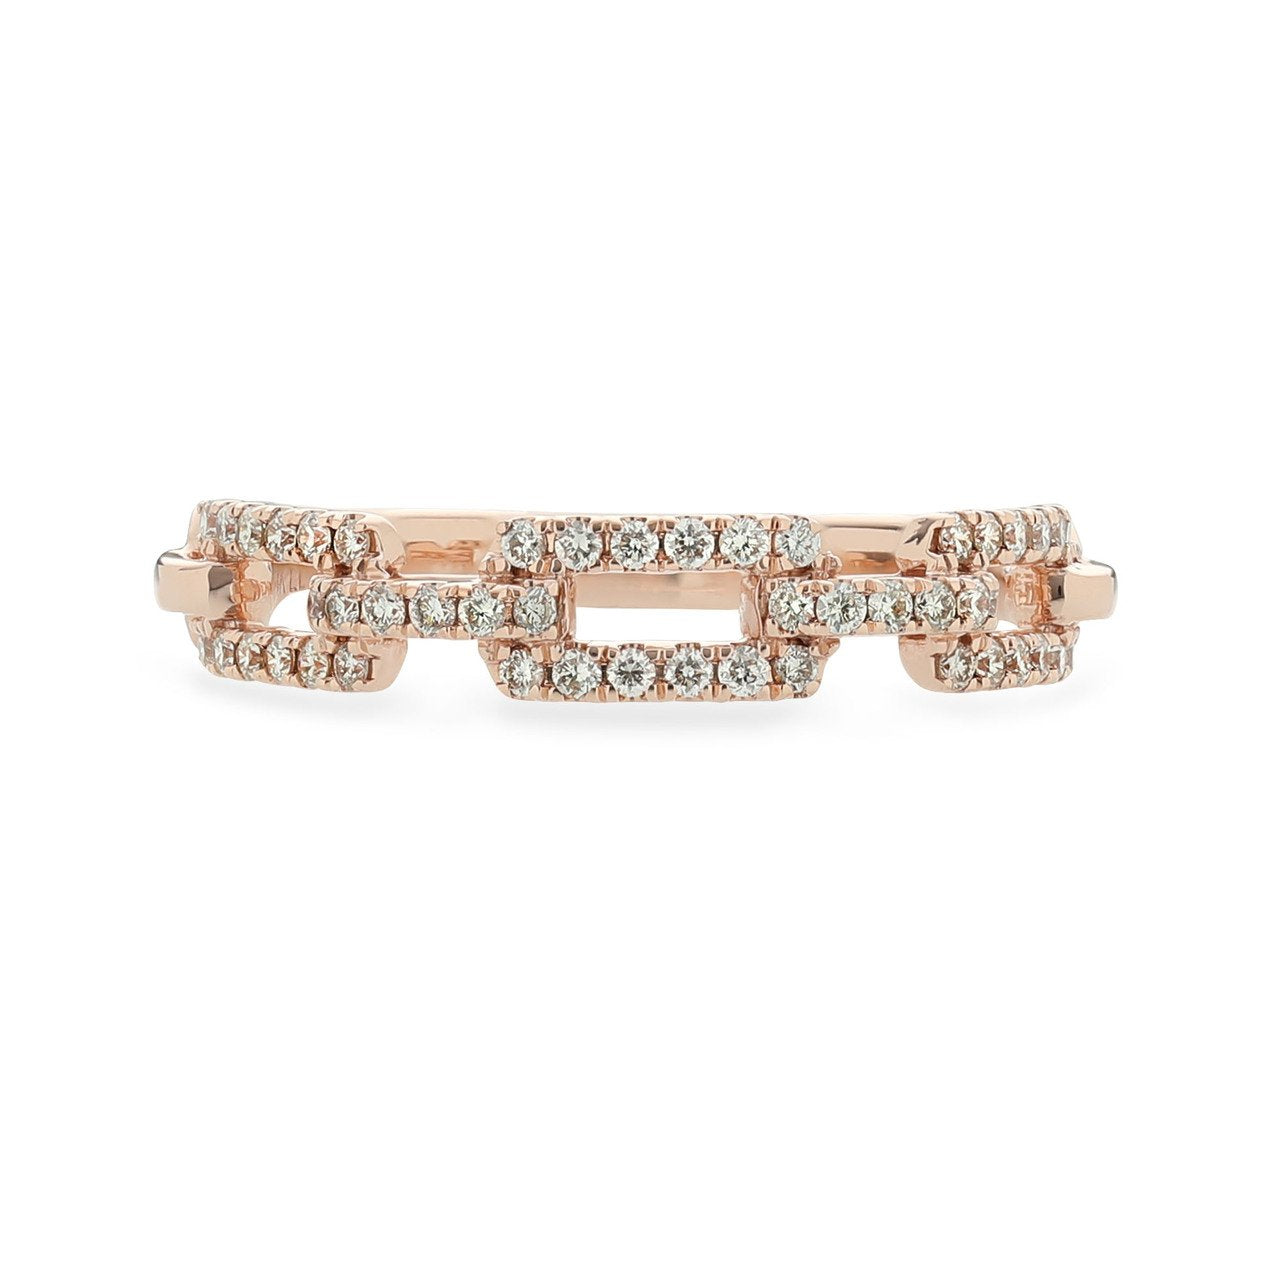 Sabel Collection 14K Pink Gold Diamond Link Ring